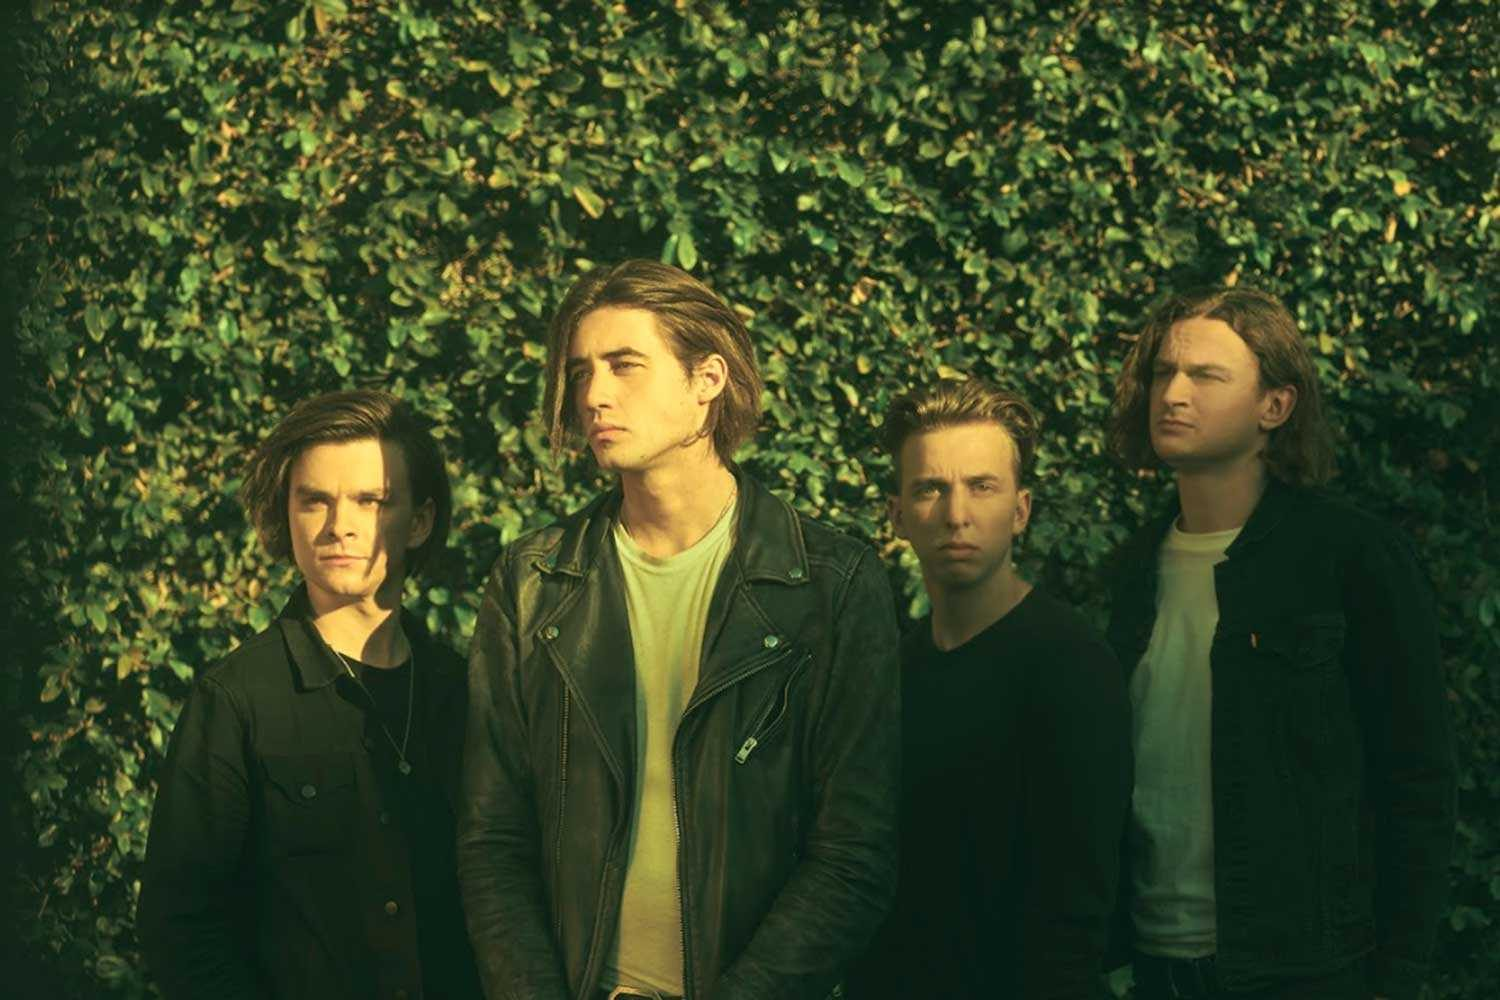 The Faim have released a new video for 'Buying Time'